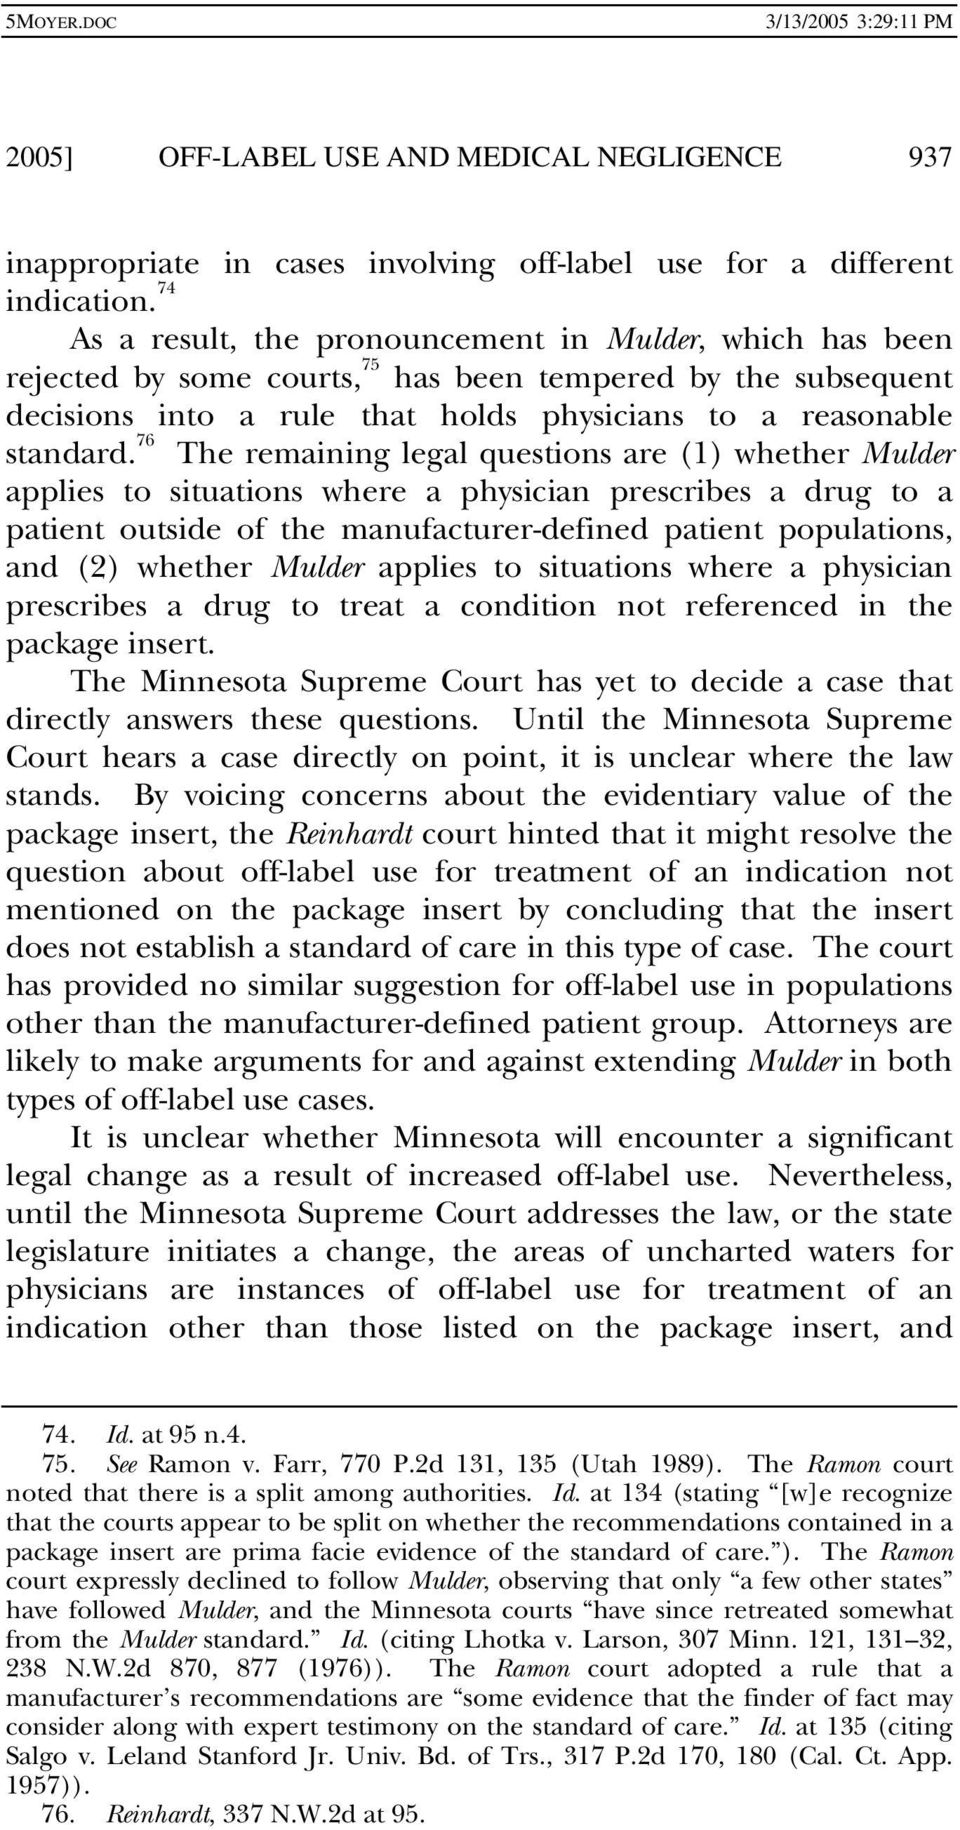 76 The remaining legal questions are (1) whether Mulder applies to situations where a physician prescribes a drug to a patient outside of the manufacturer-defined patient populations, and (2) whether